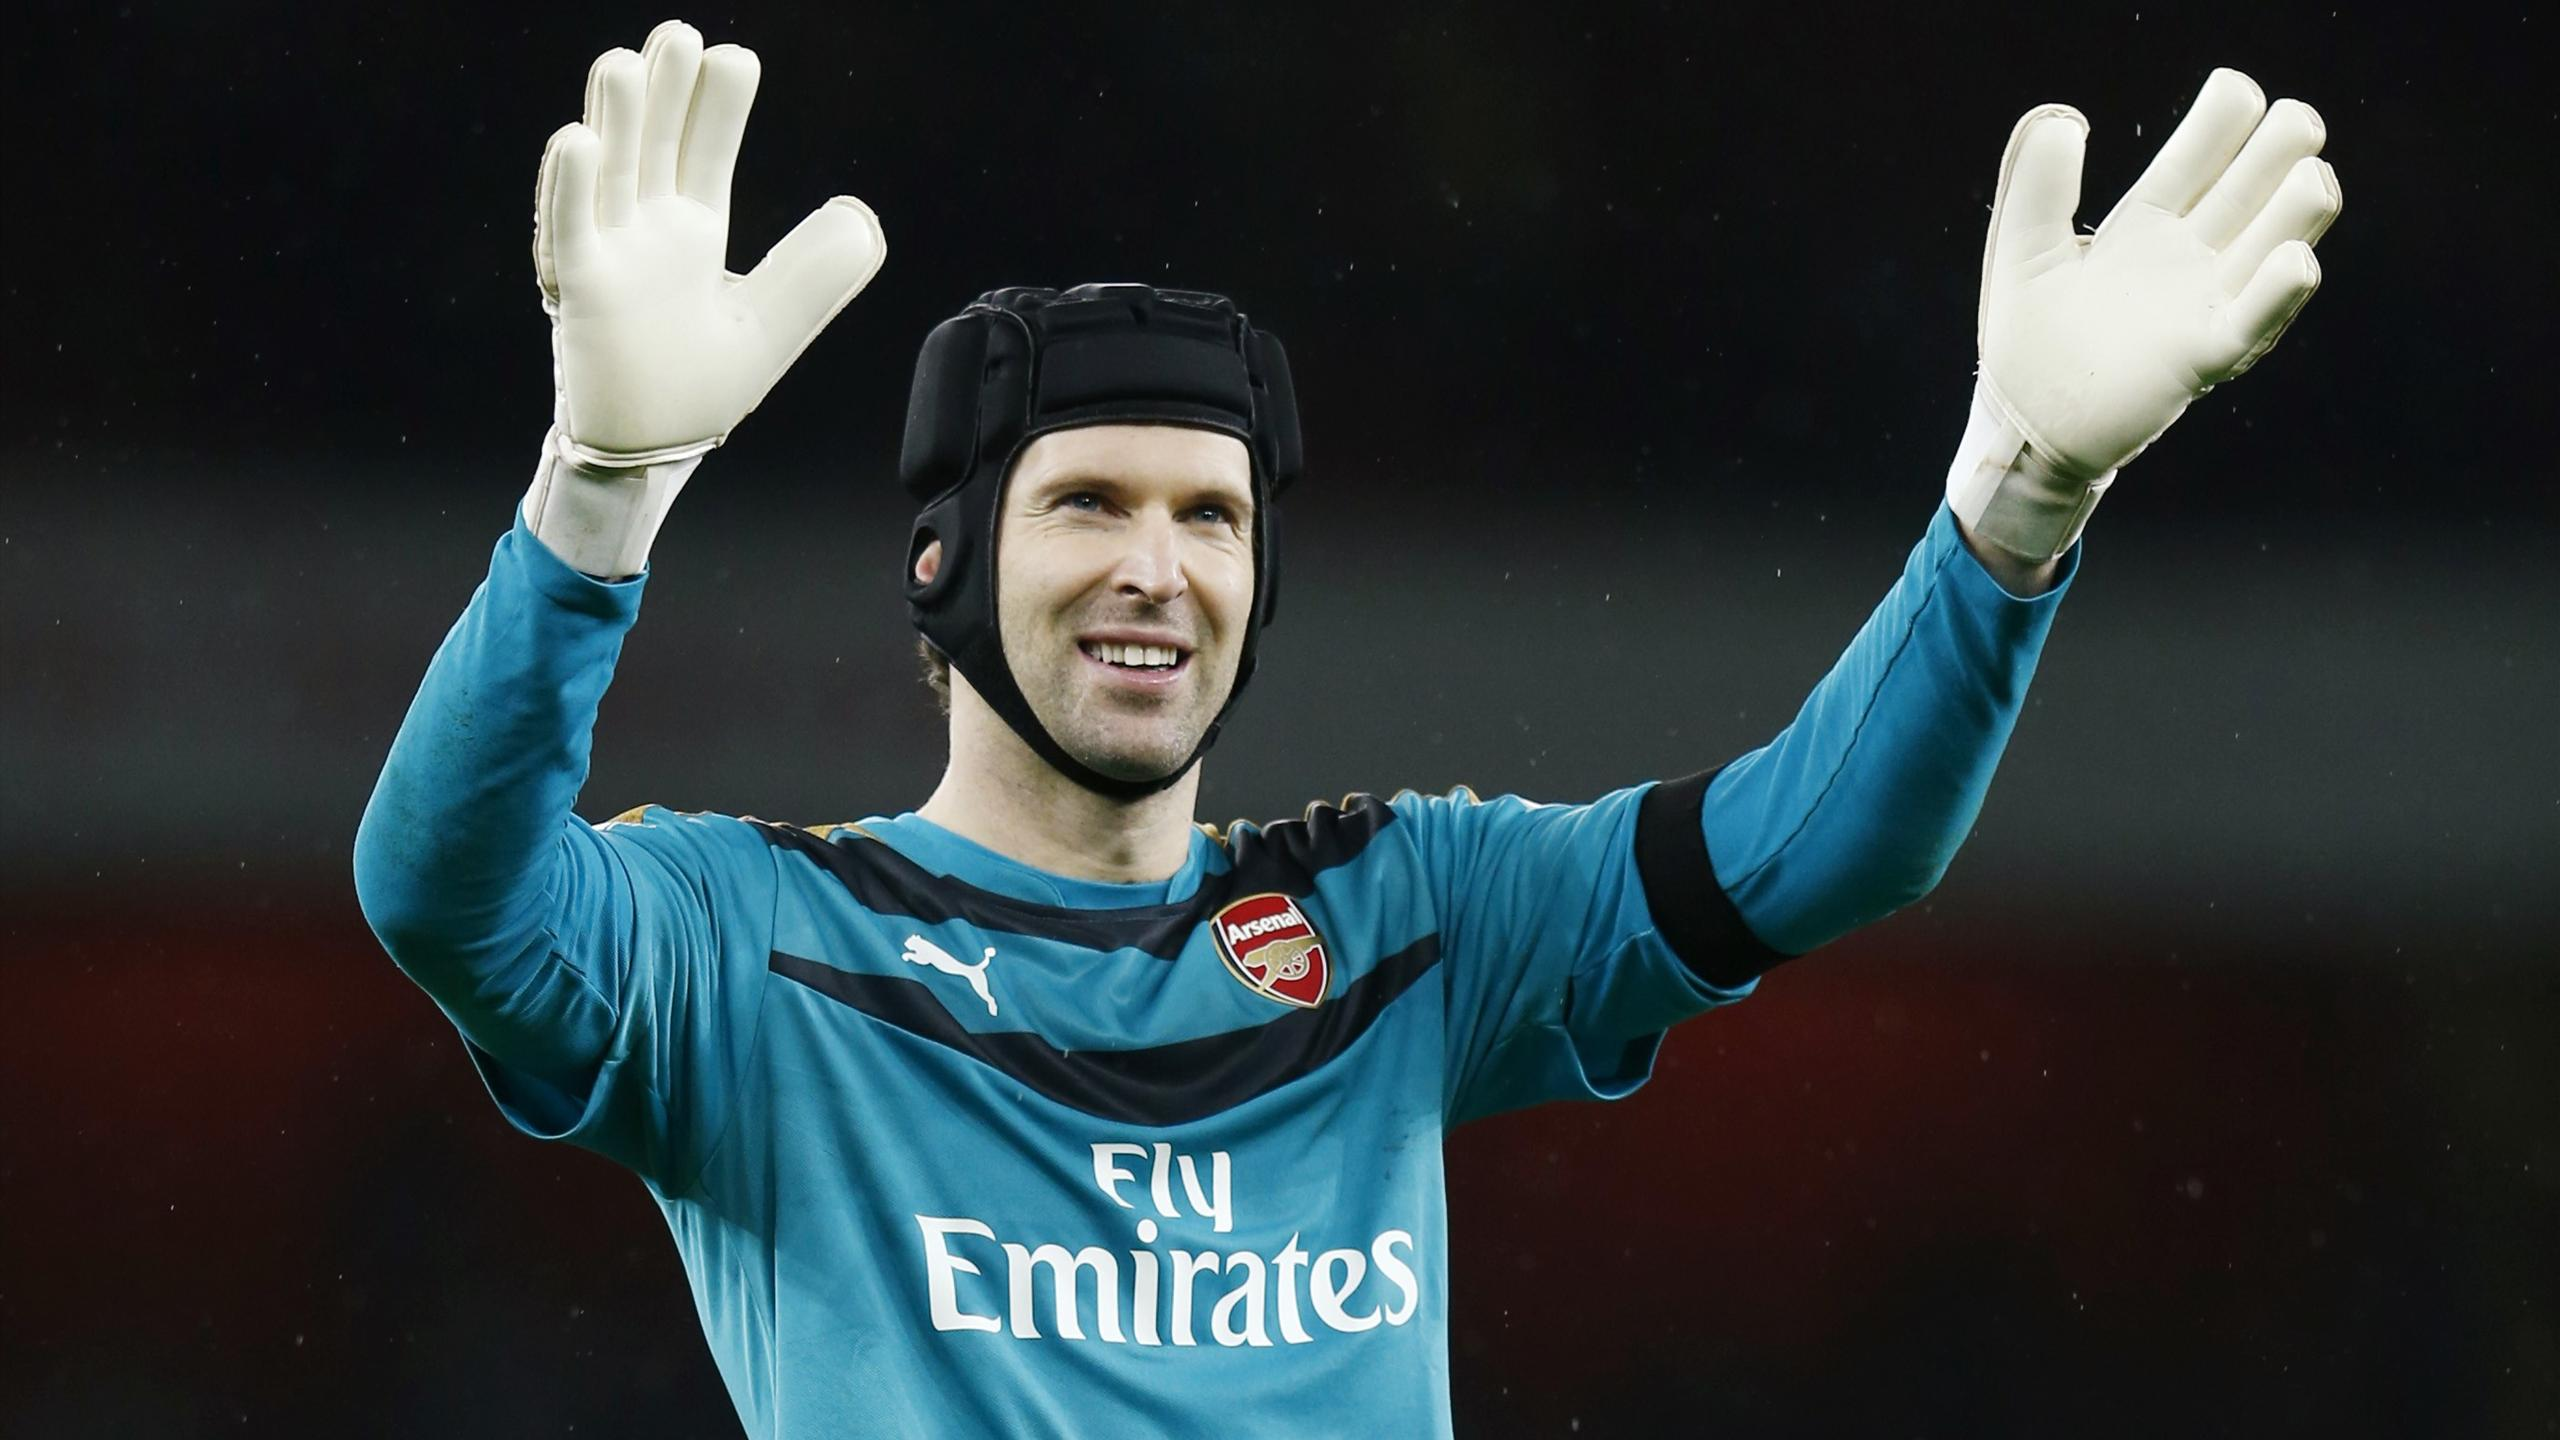 Petr Cech celebrates Arsenal's 1-0 win over Newcastle